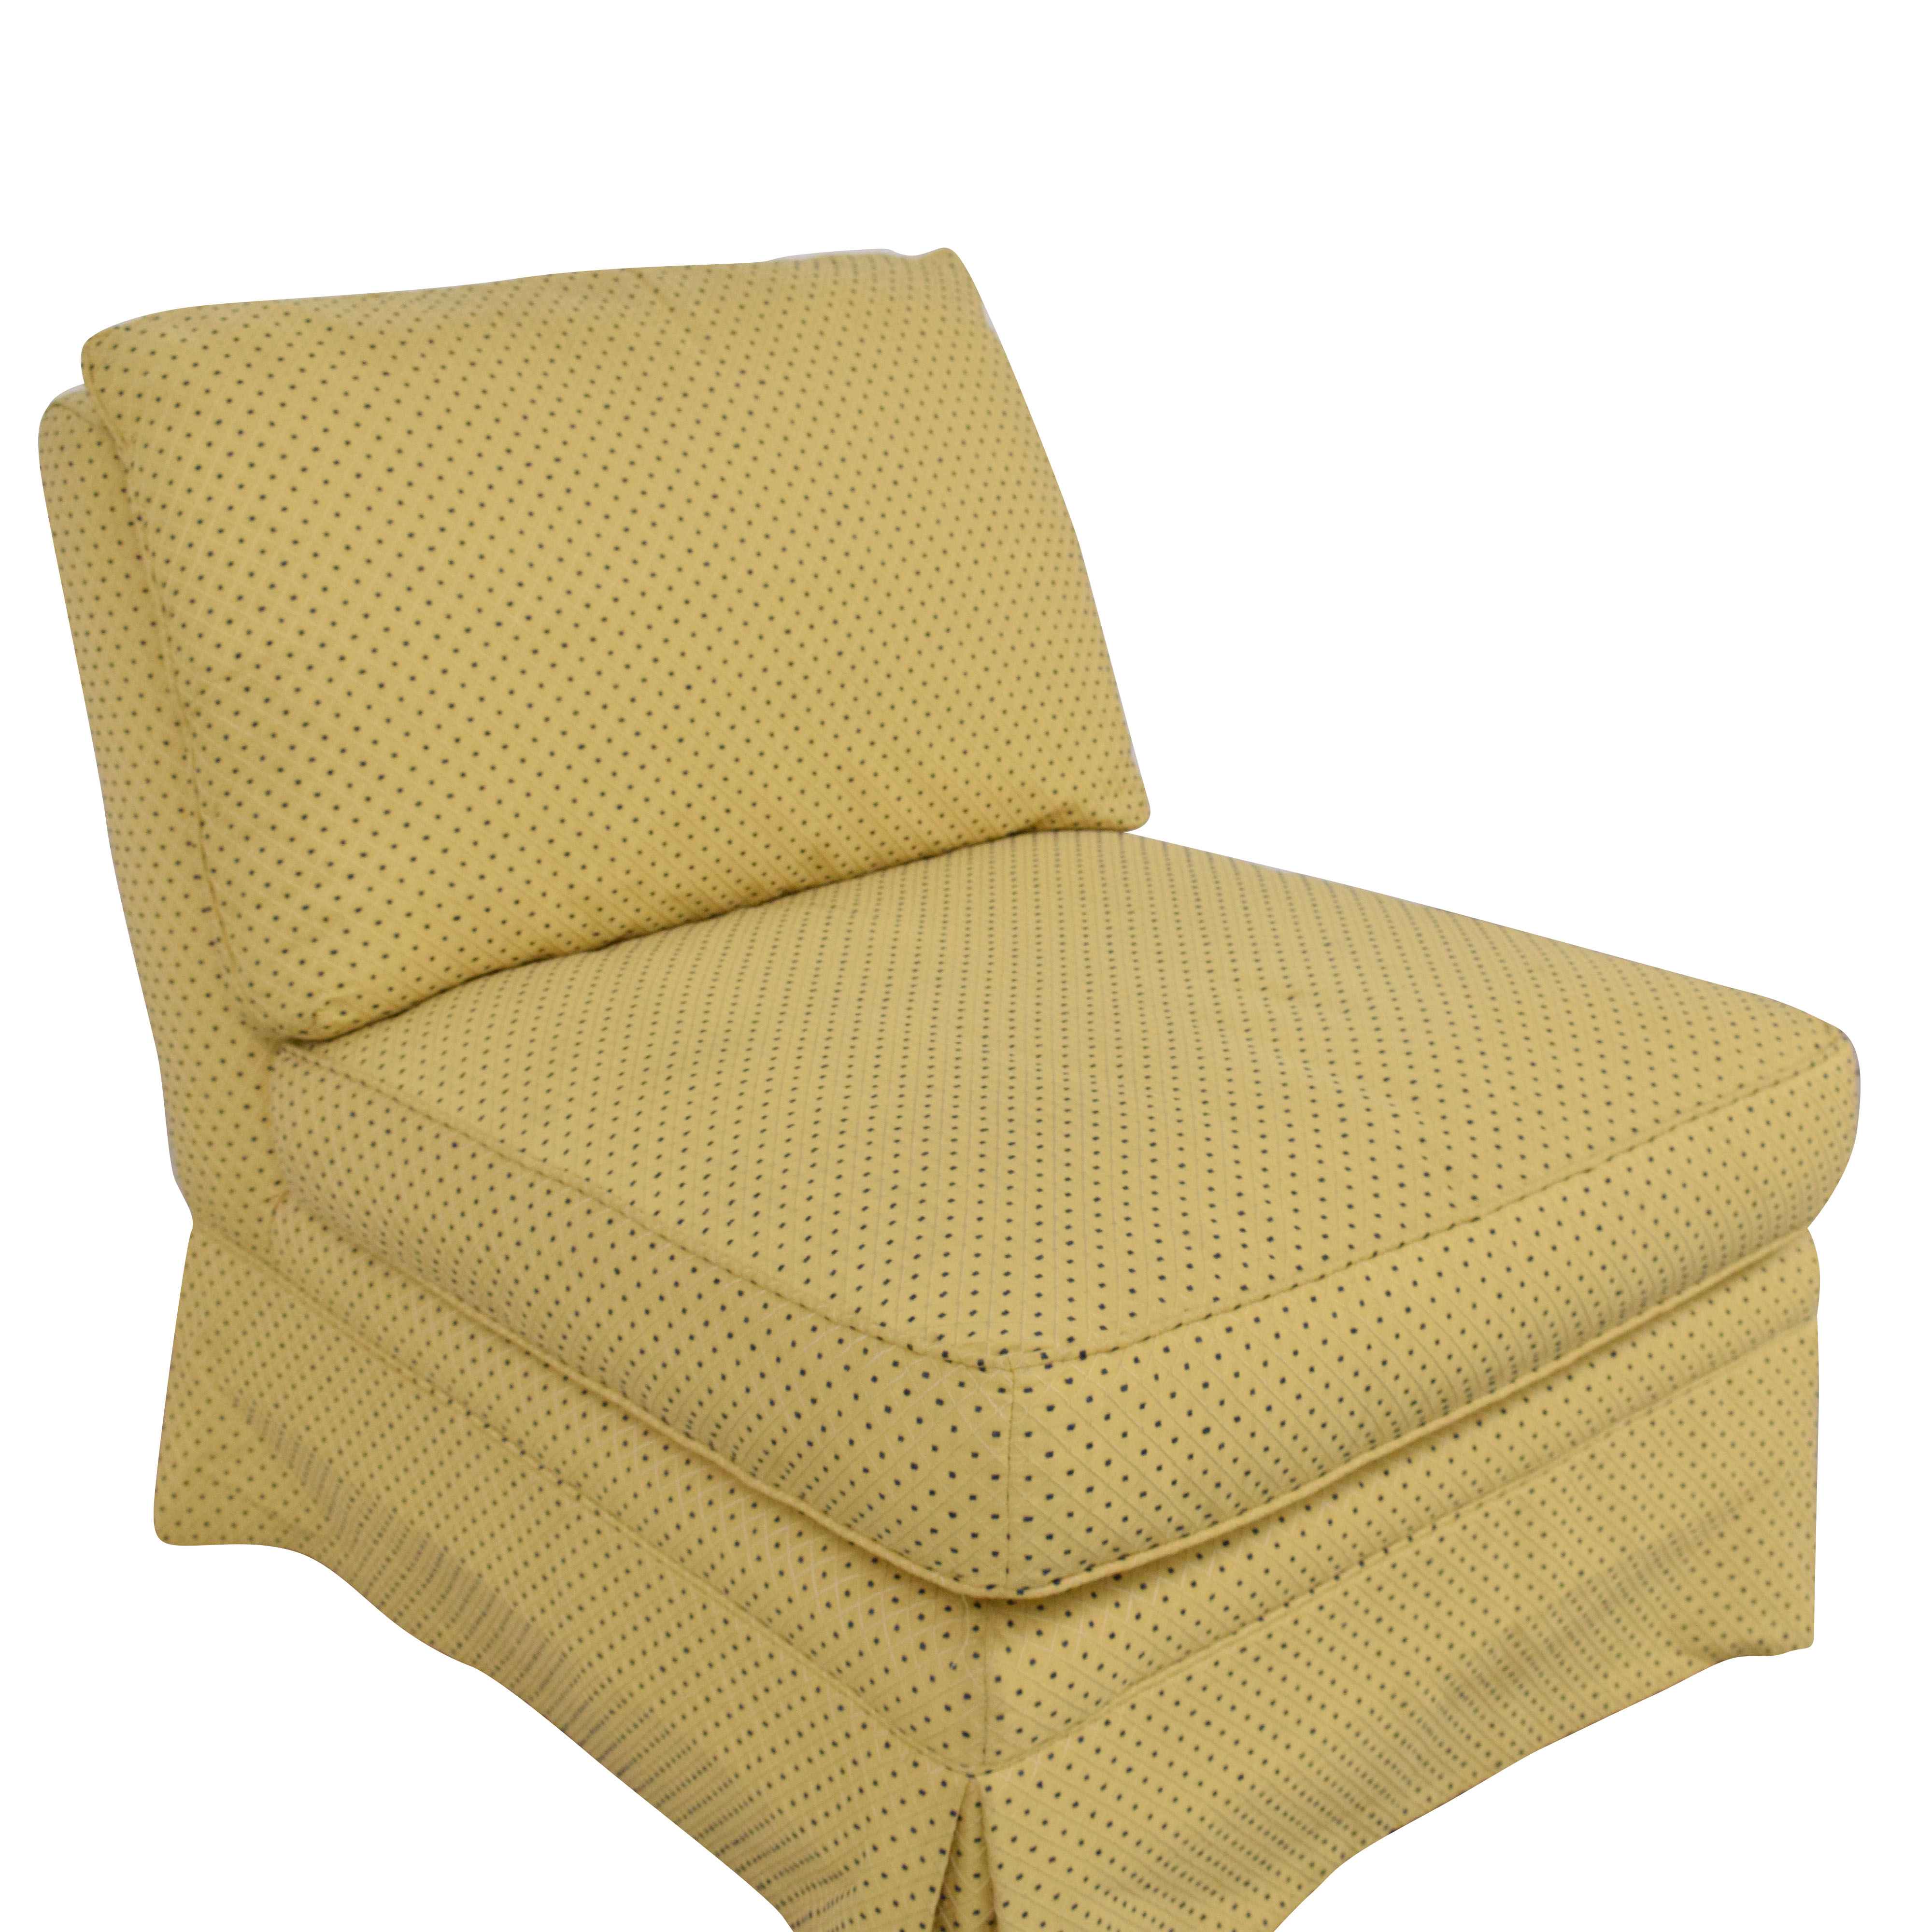 Sherrill Furniture Upholstered Chair / Accent Chairs